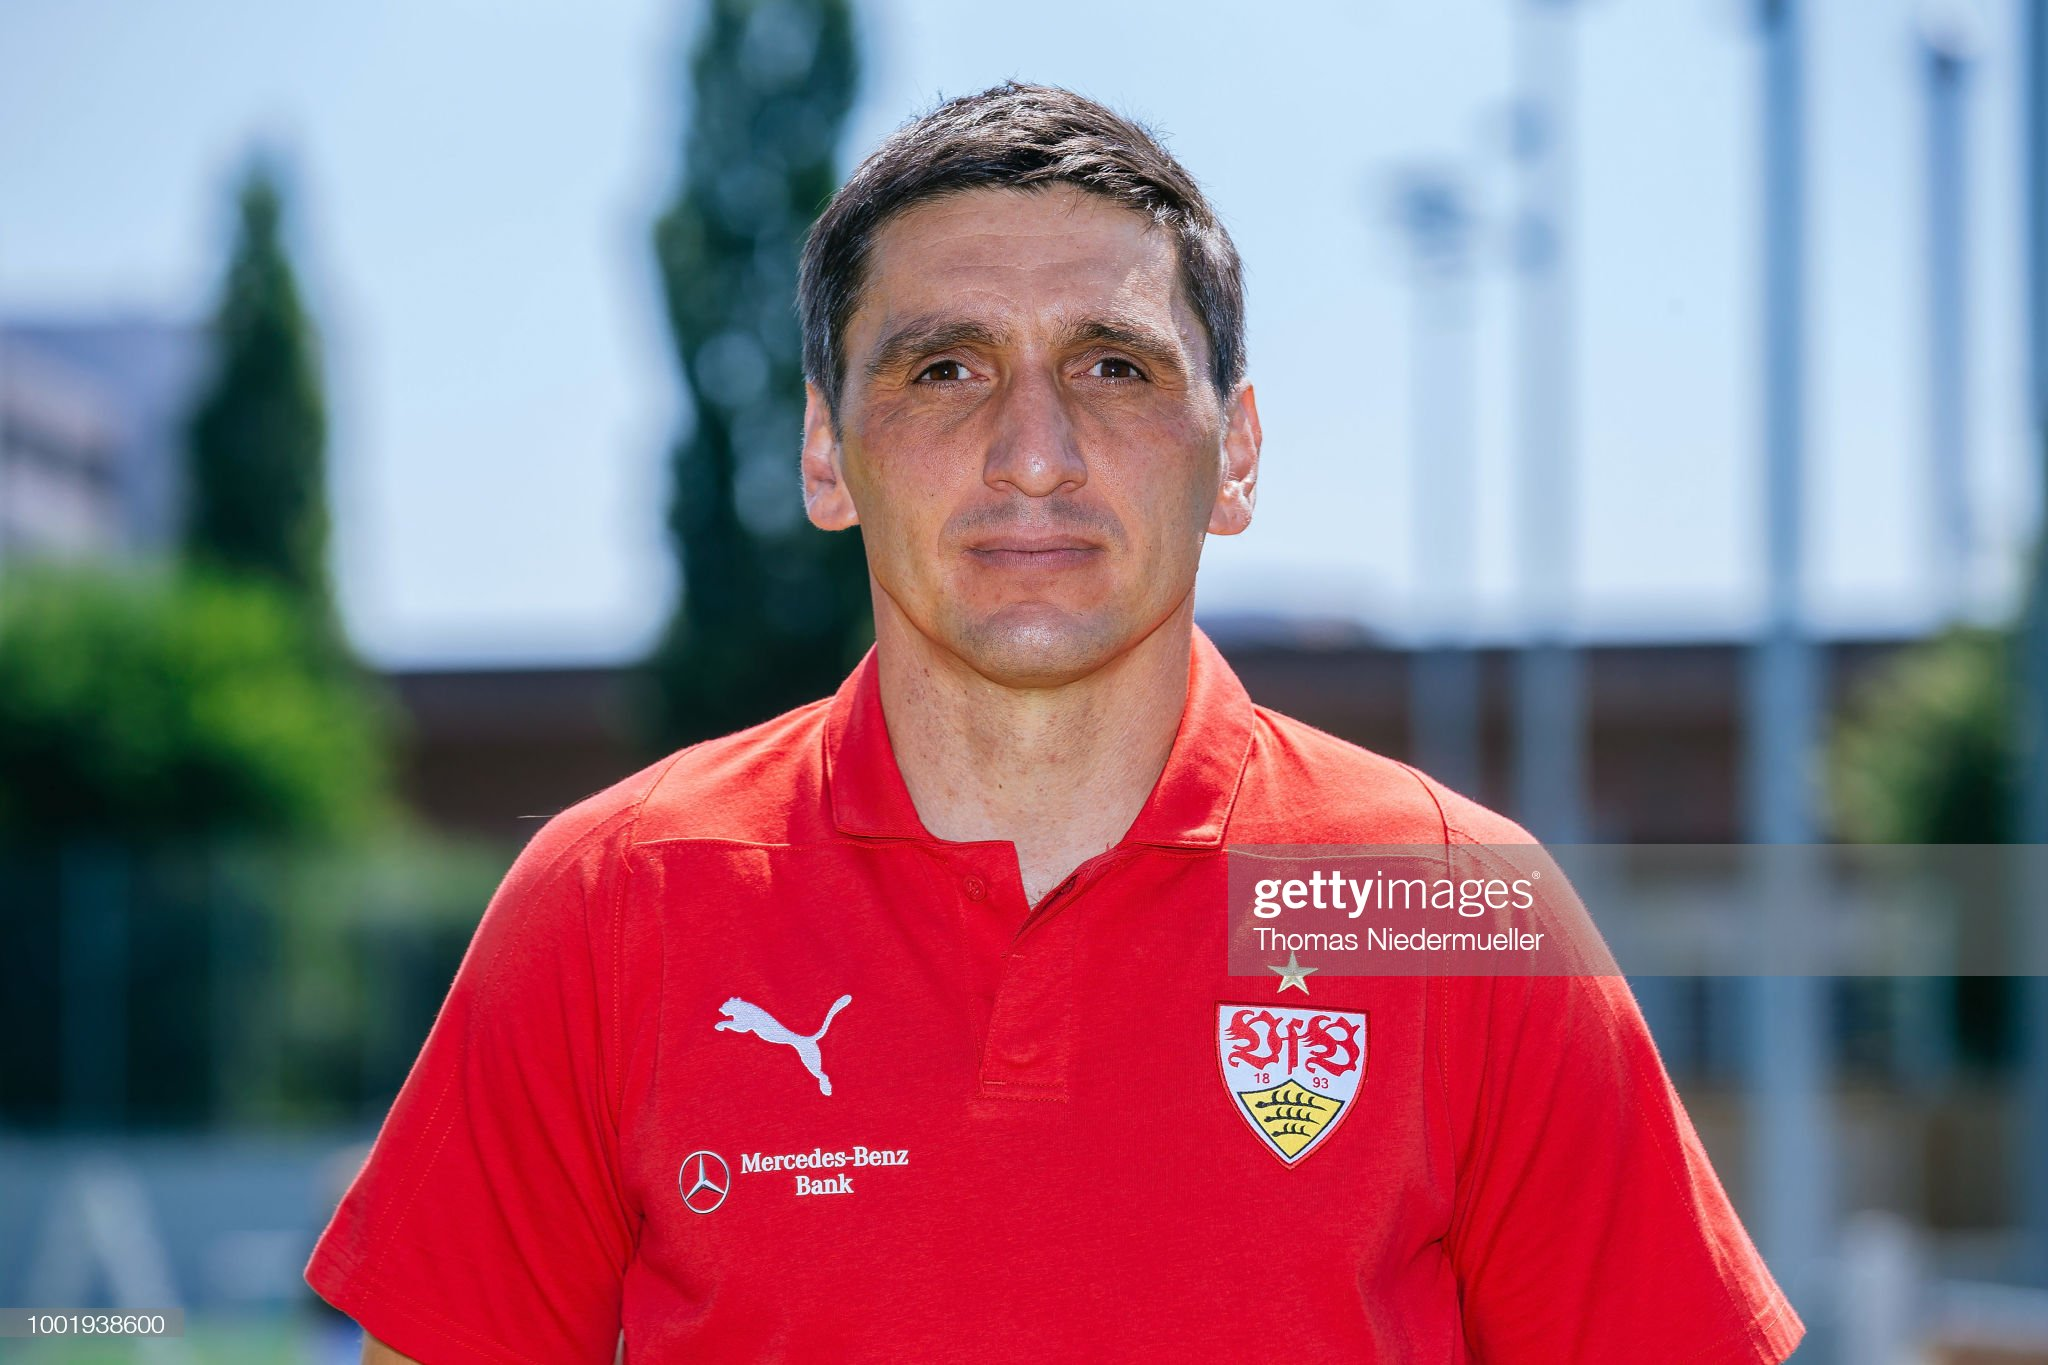 https://media.gettyimages.com/photos/head-coach-tayfun-korkut-of-vfb-stuttgart-poses-during-the-team-at-picture-id1001938600?s=2048x2048